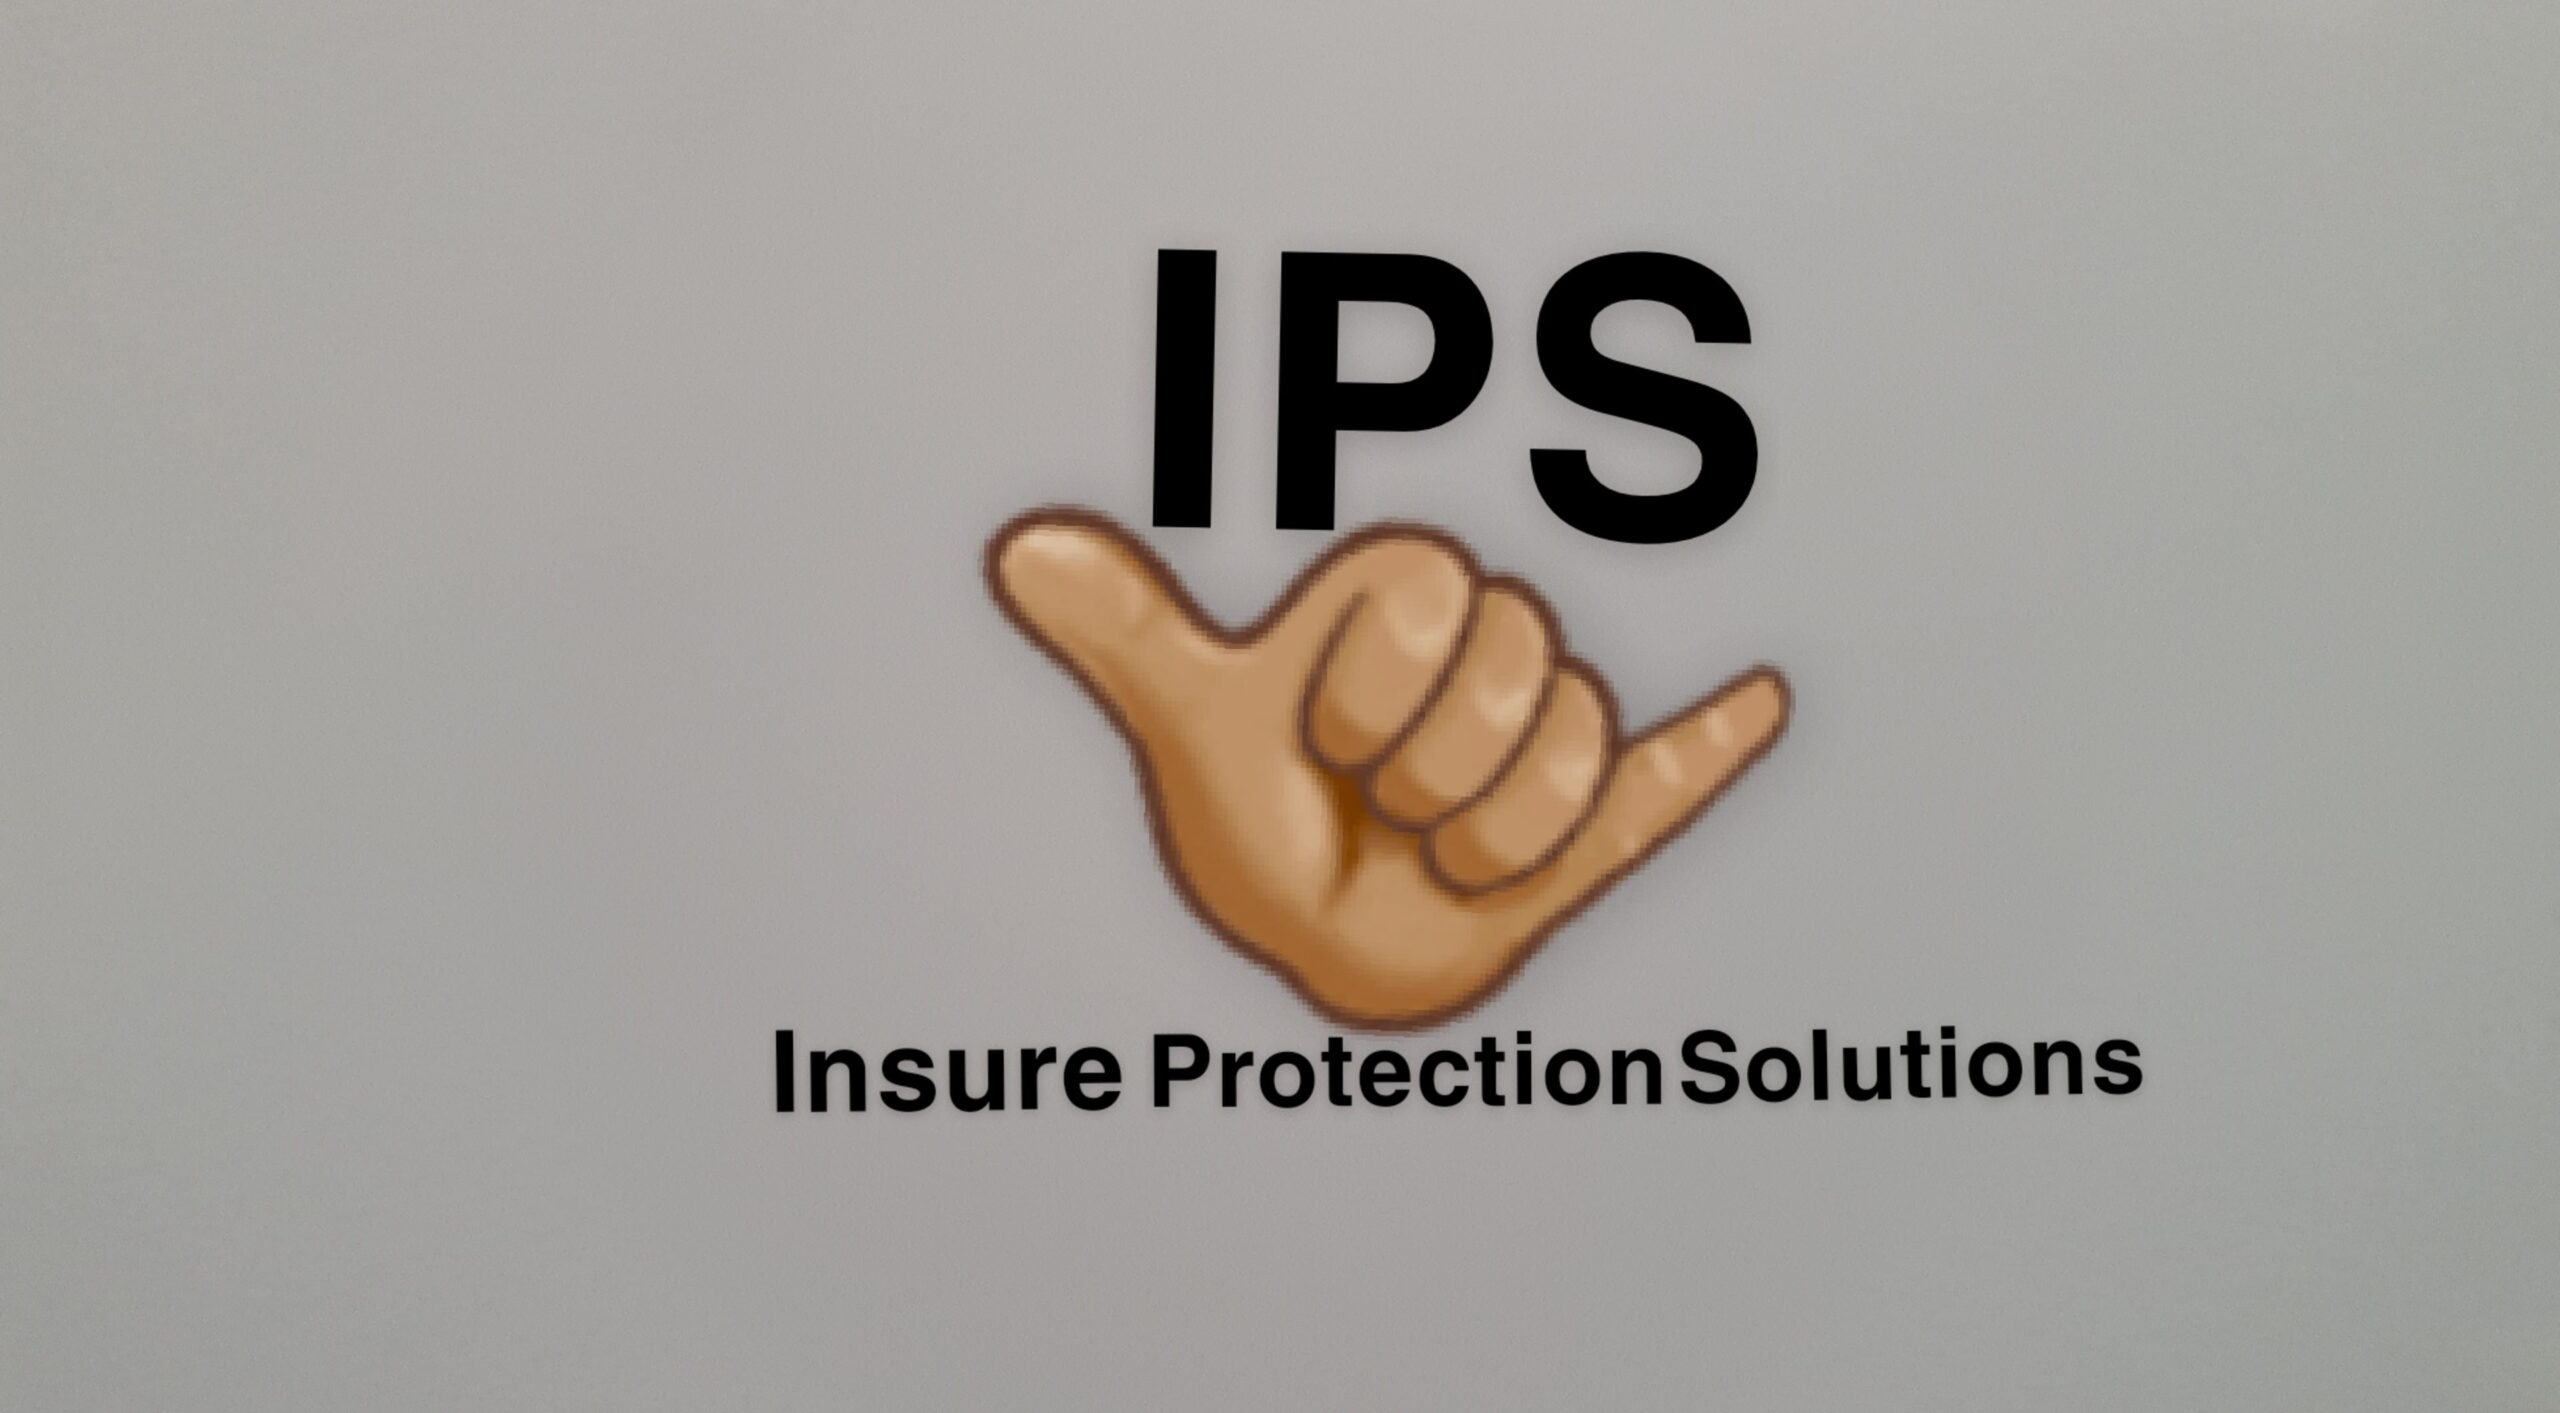 Insure Protection solutions